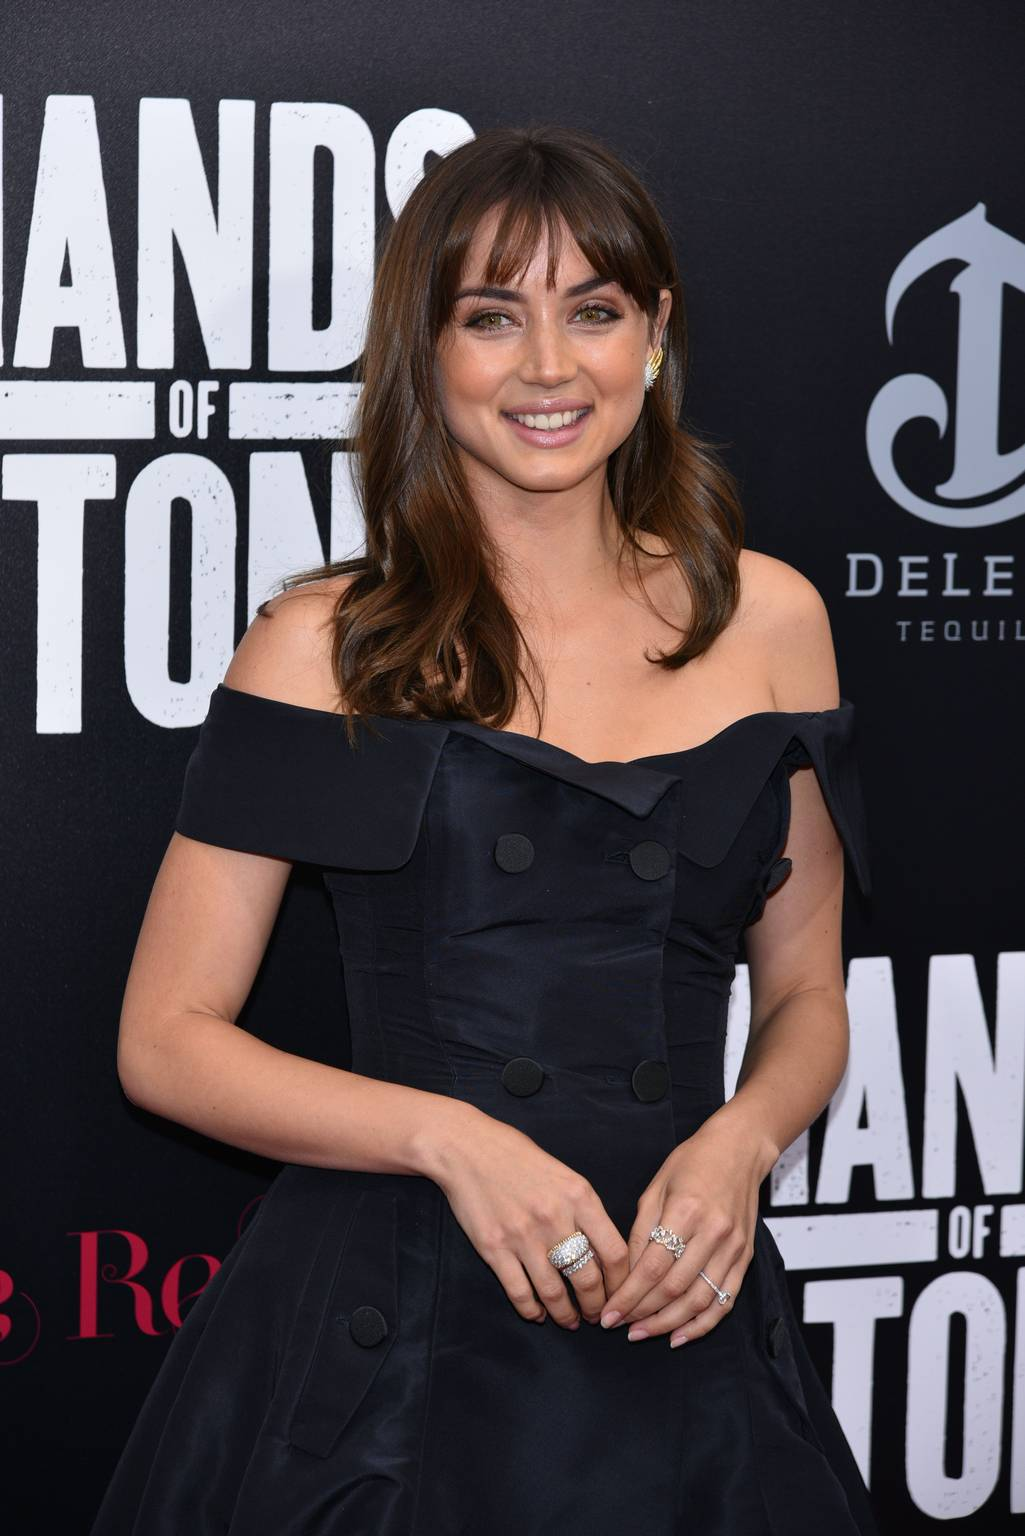 Hot & Sexy Ana de Armas in Black dress – Hands of Stone Film Premiere in New York